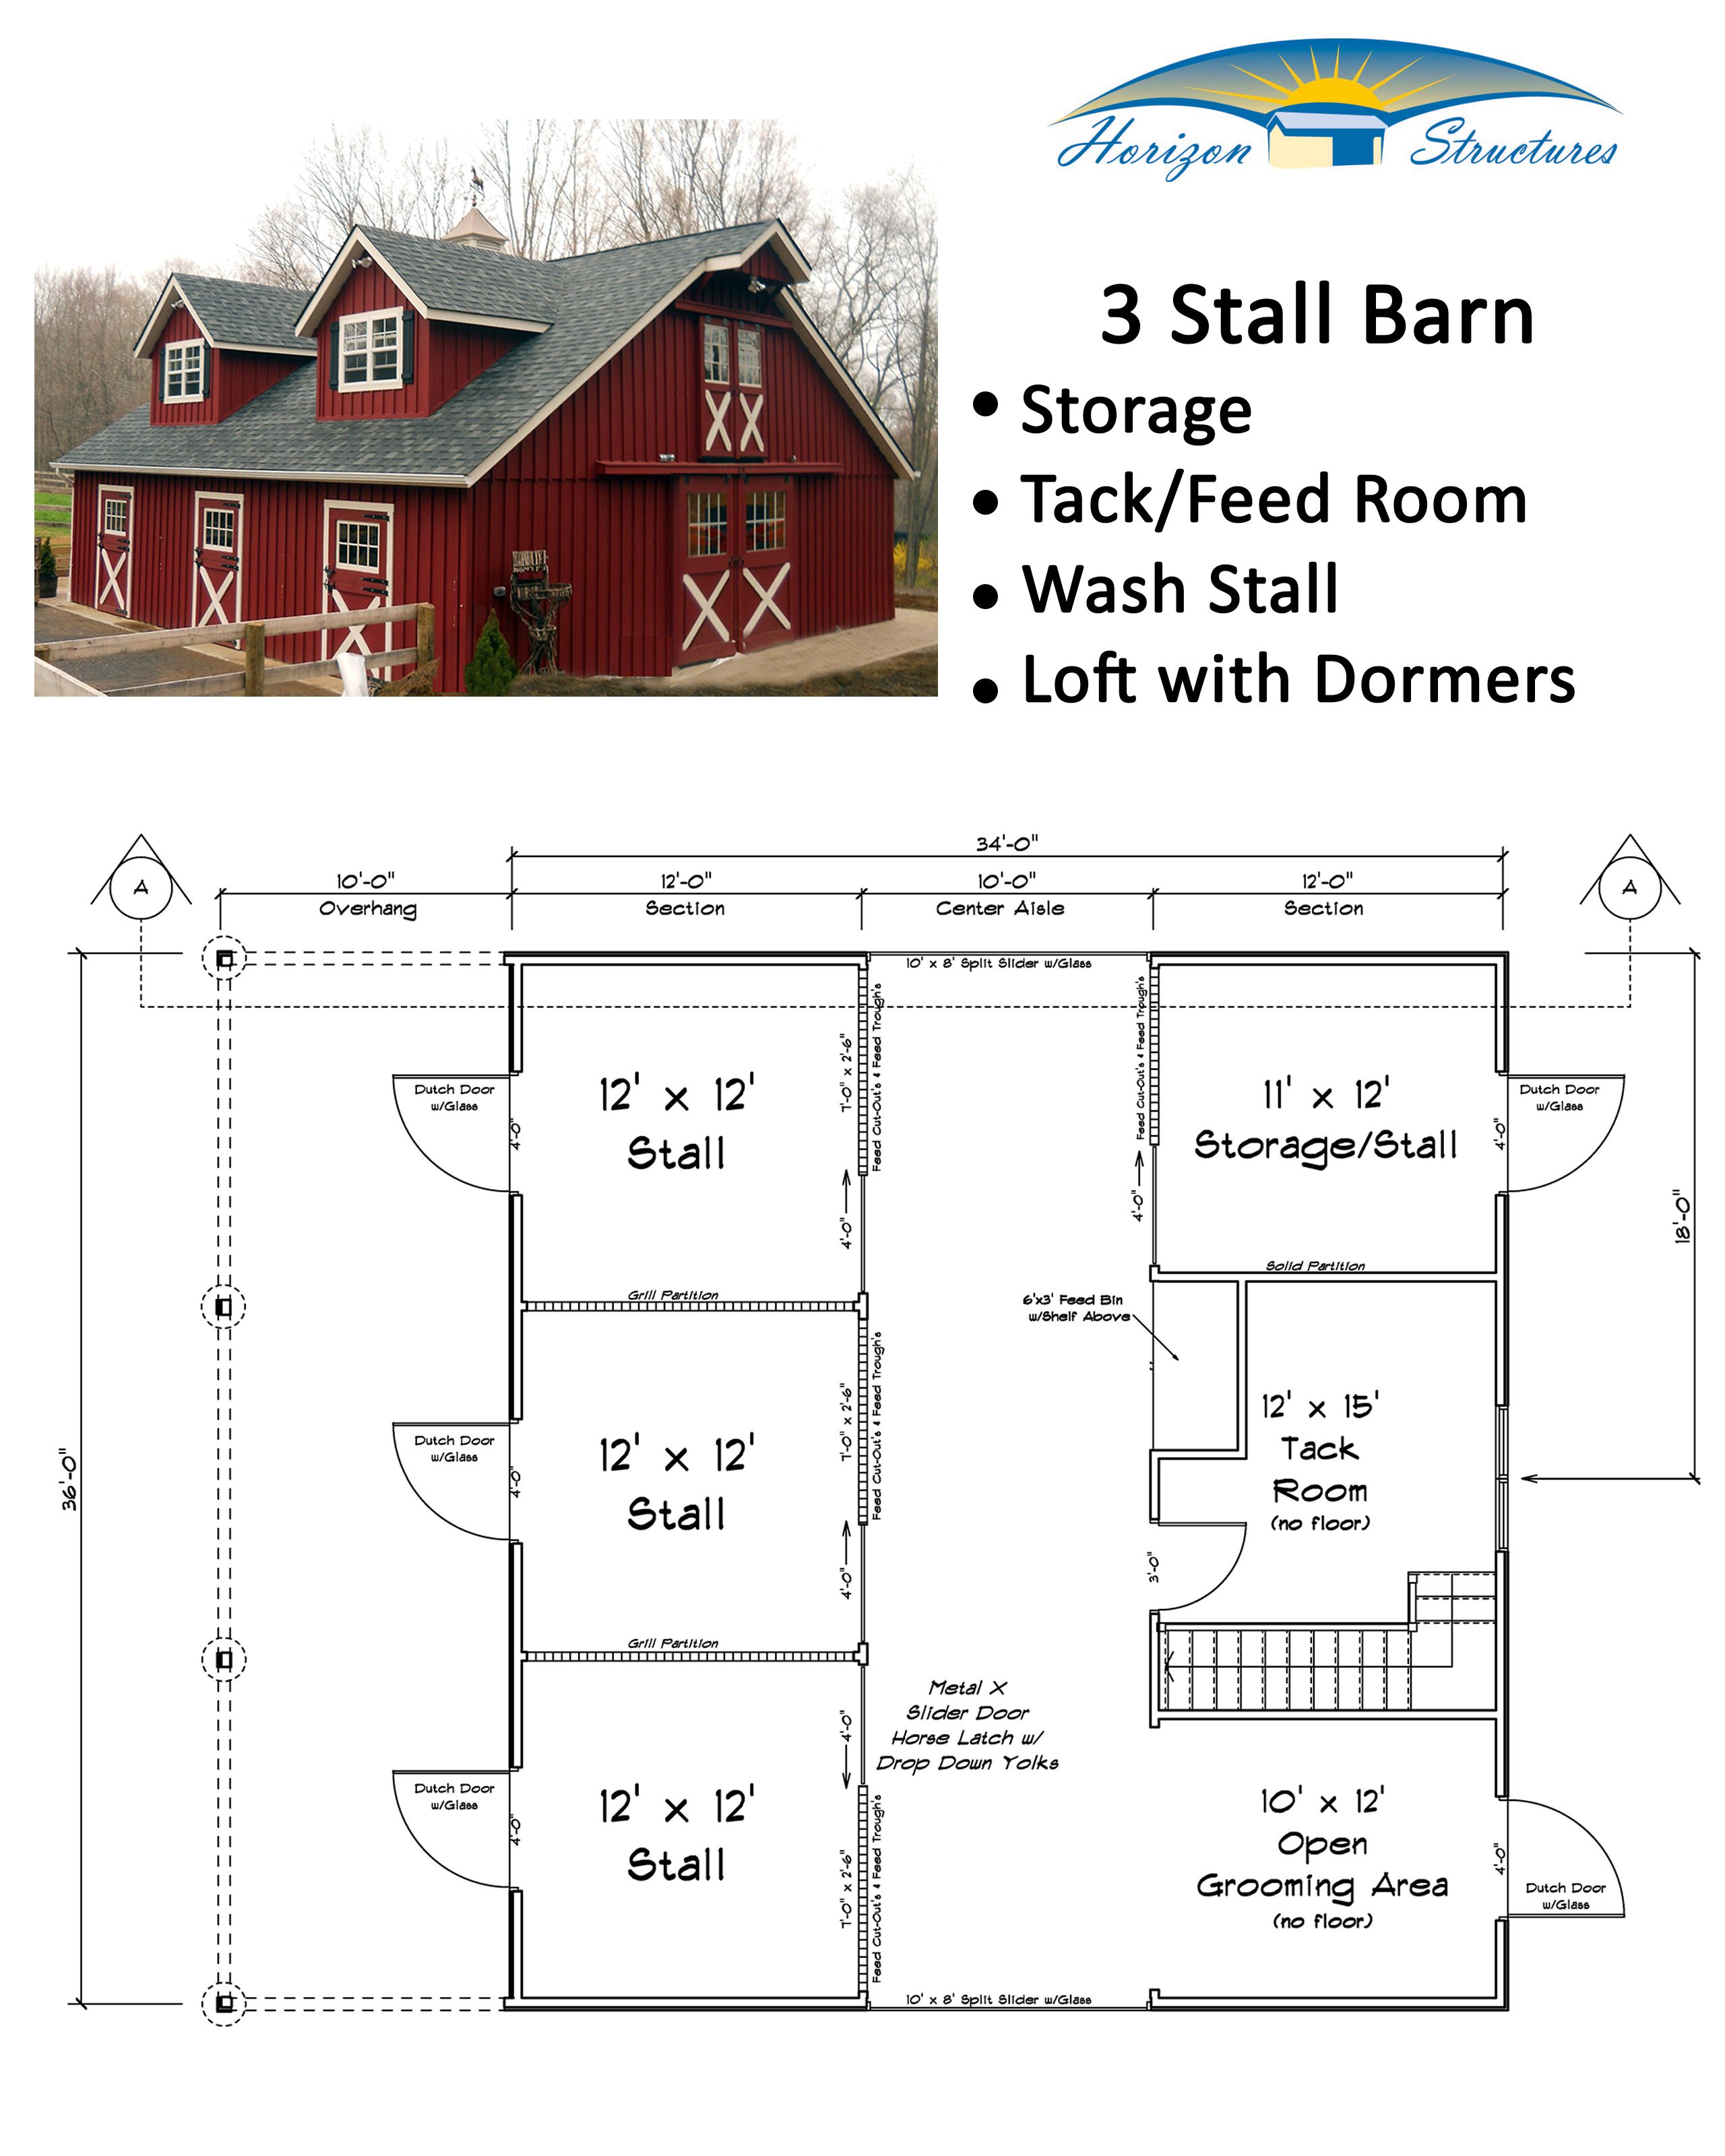 34x36 modular horse barn starting at about 50k fully for Equestrian barn plans